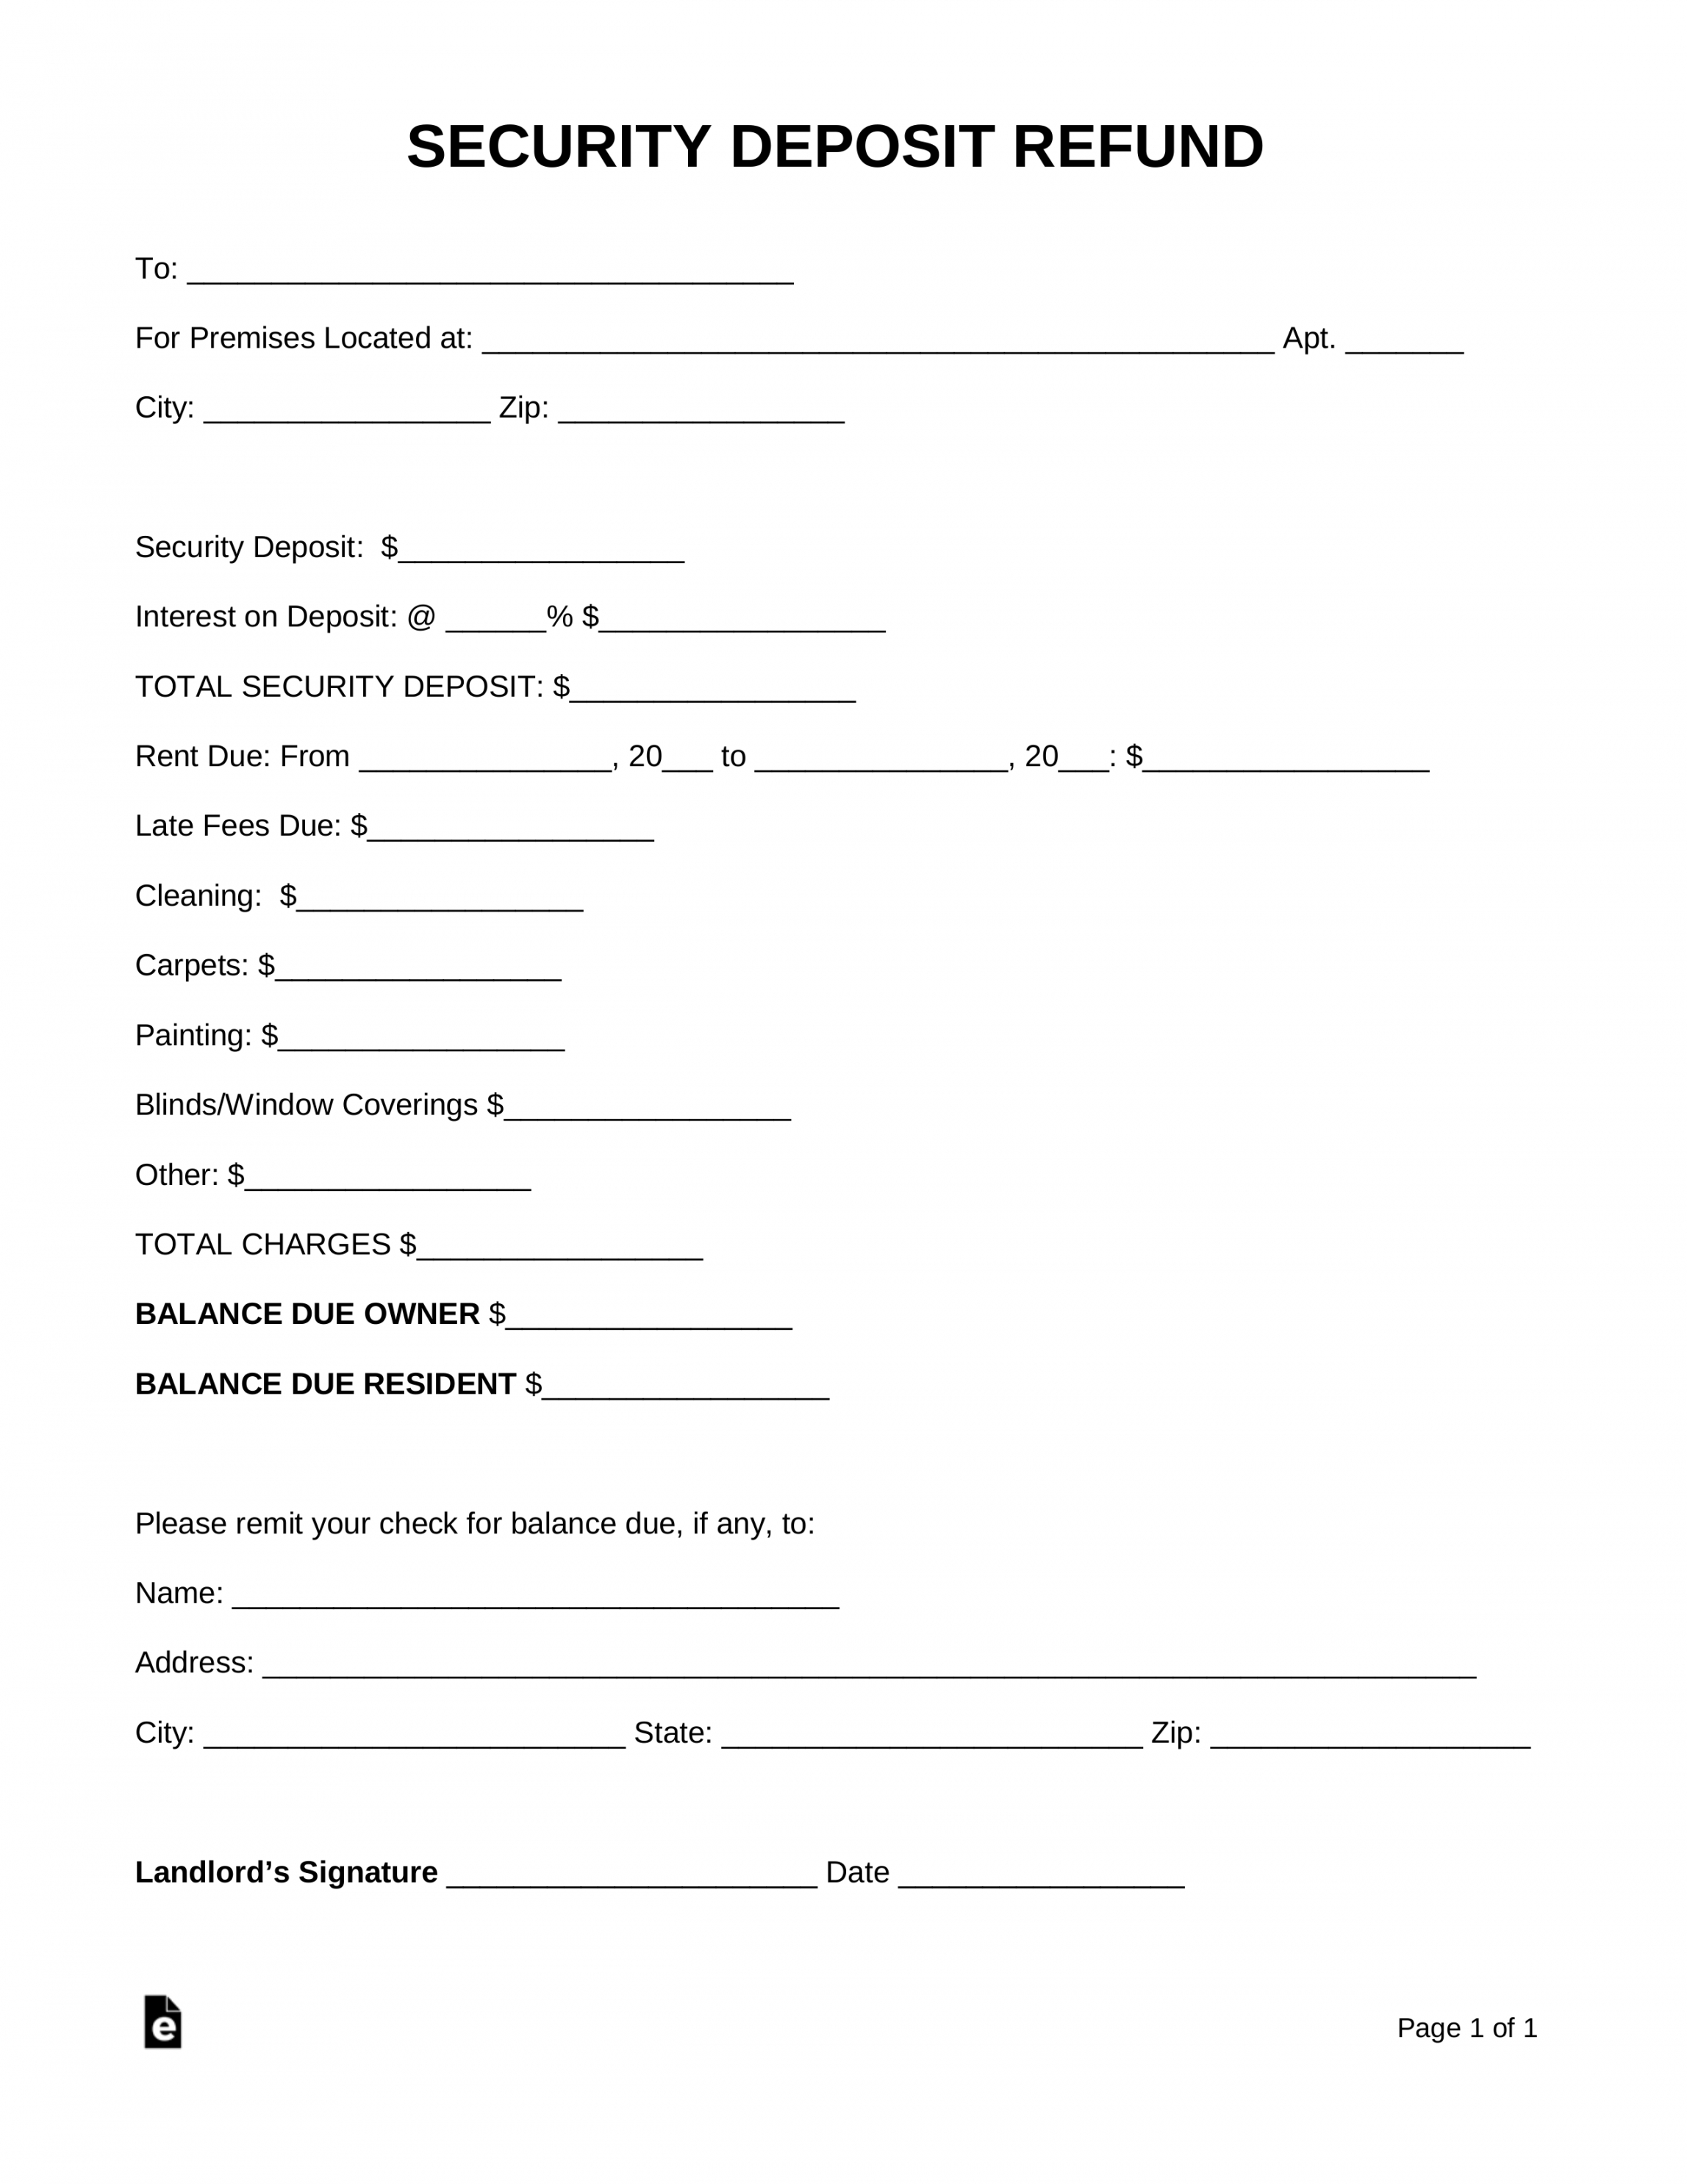 Request For Return Of Security Deposit Form